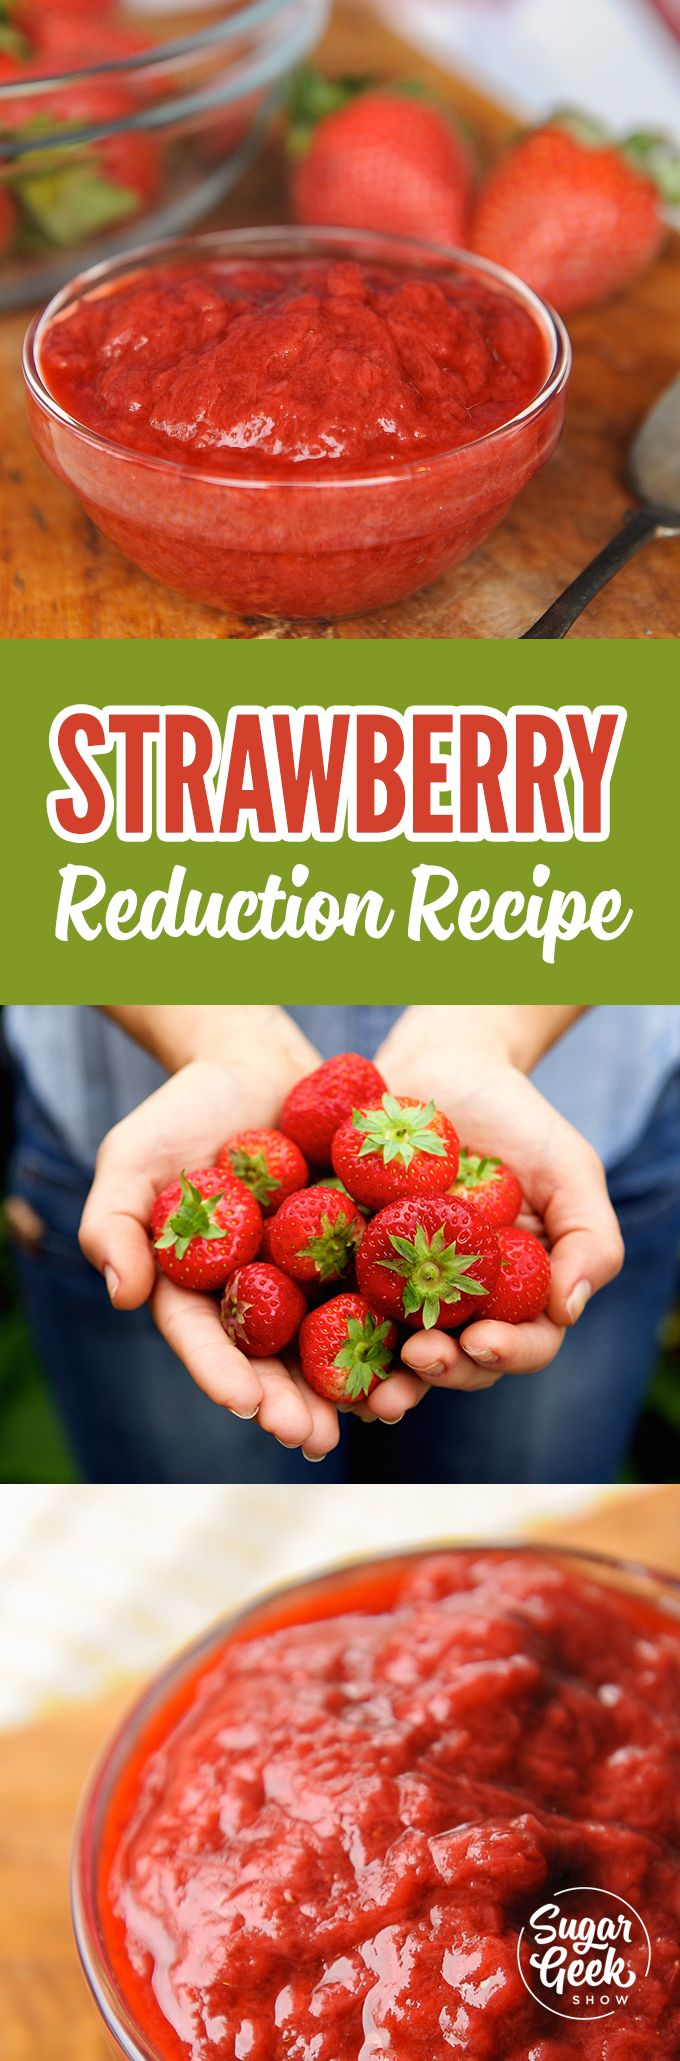 Easy strawberry reduction recipe Strawberry reduction is when you take fresh or frozen strawberries and heat them to reduce the amount of liquid. You might do this to make a puree to use as a topping, to add into cake batter or even for buttercream. The best thing about making a strawberry reduction is that it keeps all the flavor of the strawberries without adding extra moisture.